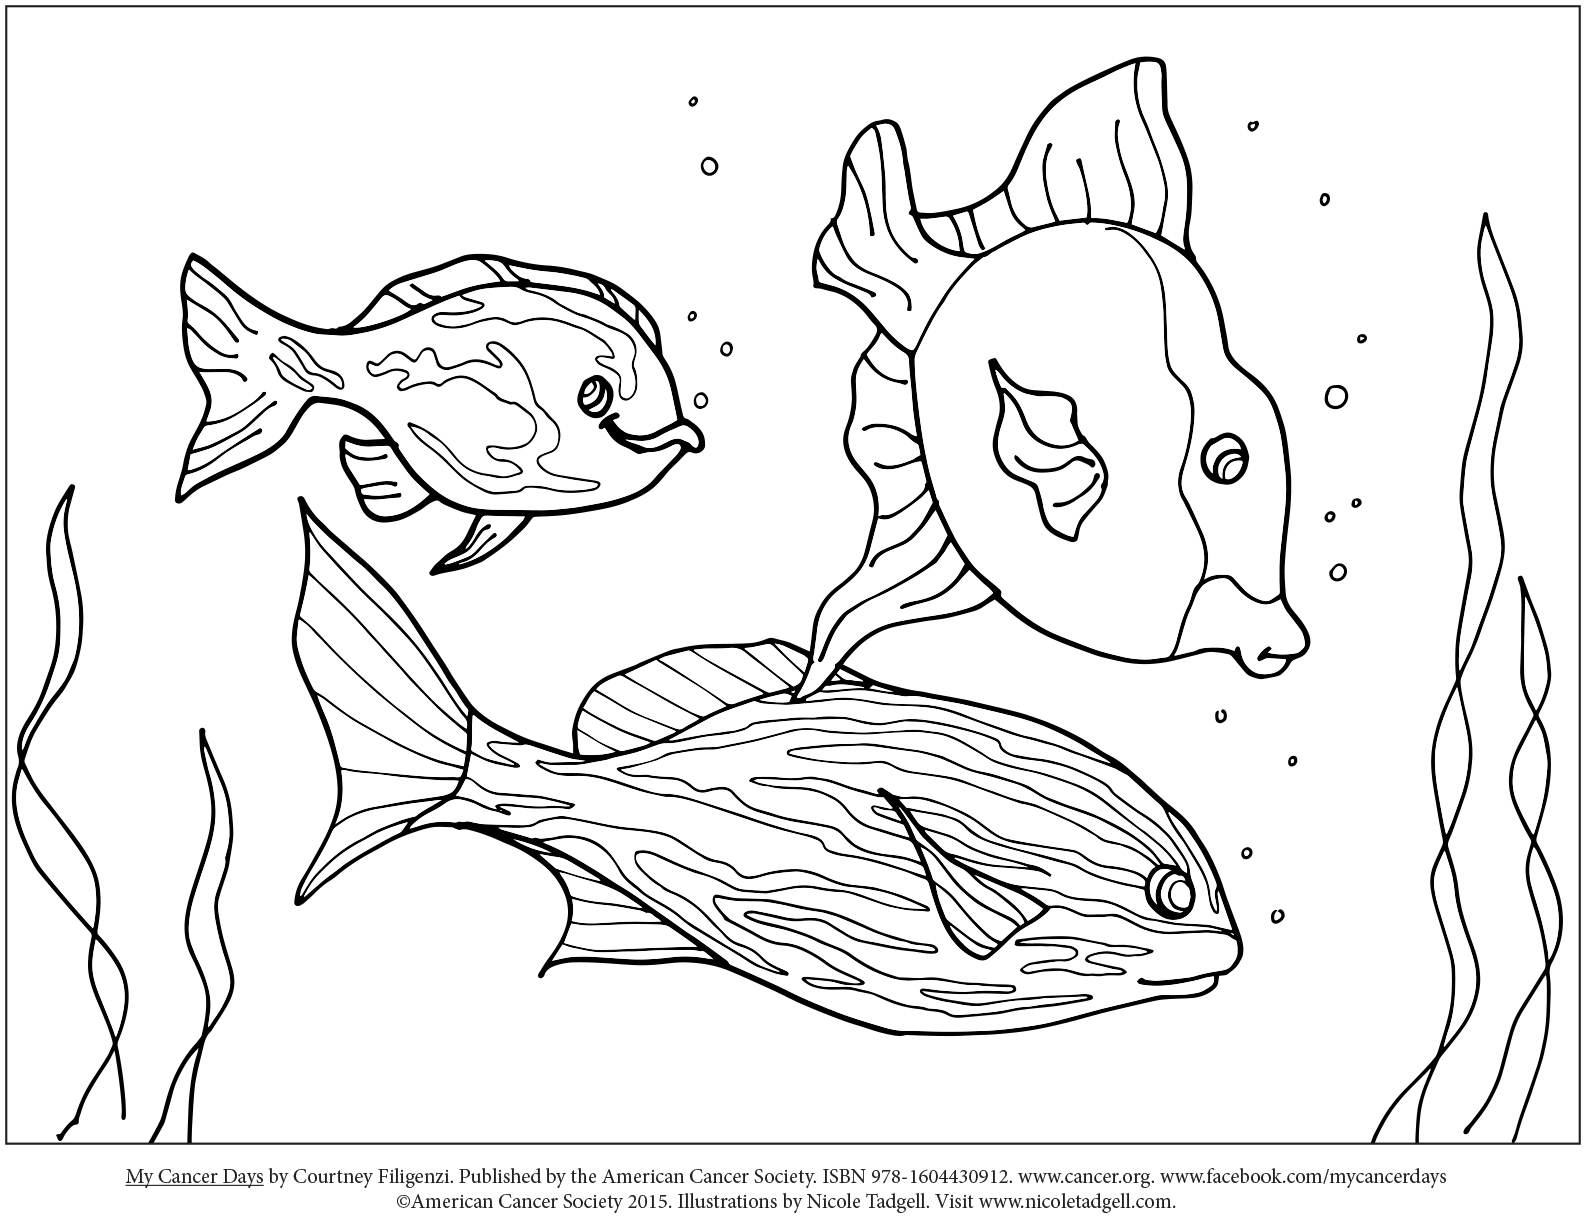 Nicole Tadgell Illustration: Coloring Pages for My Cancer Days